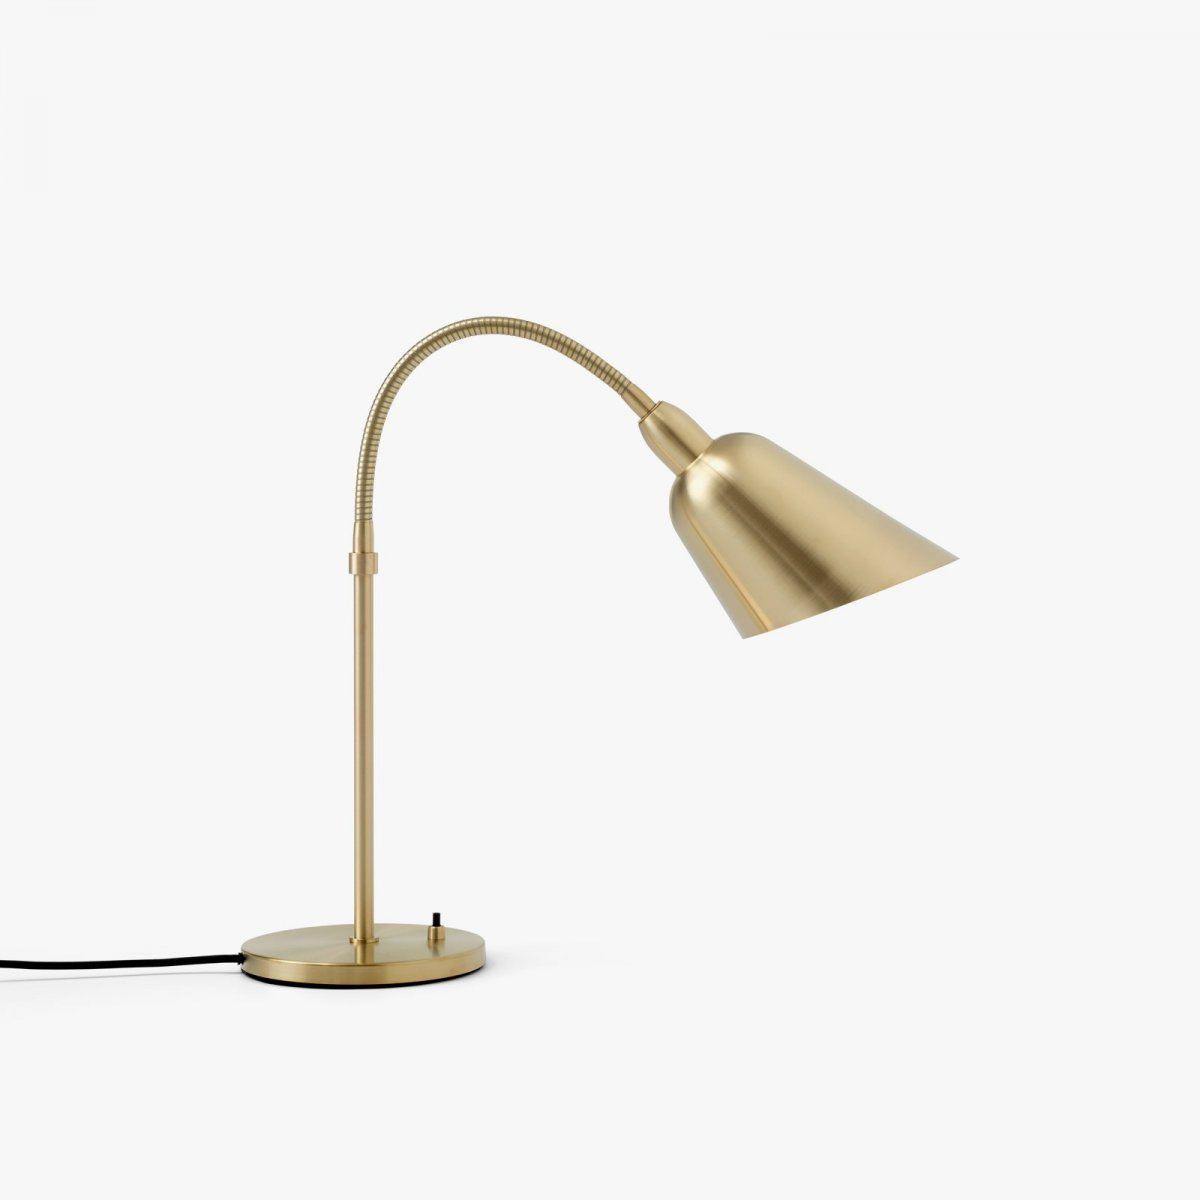 Bellevue AJ8 work lamp, brass.